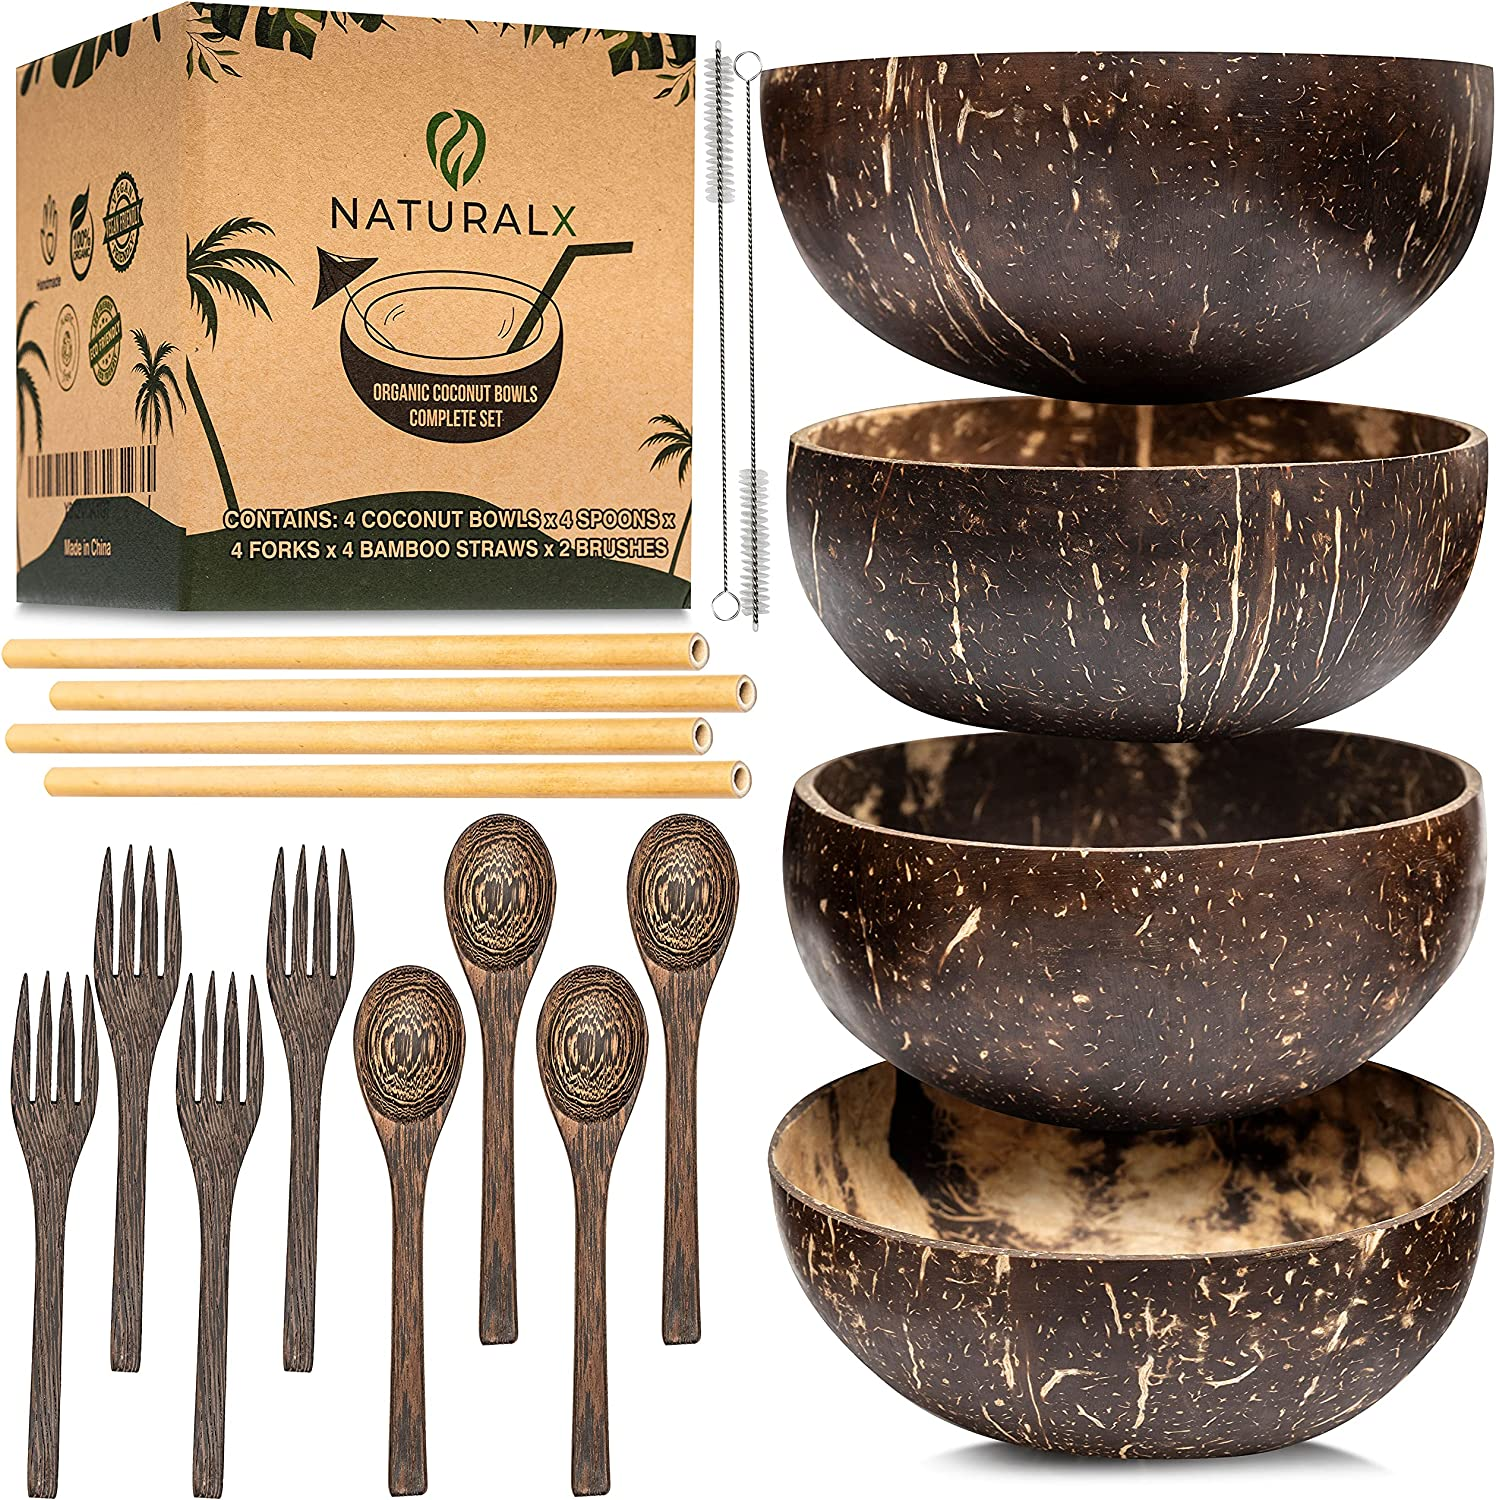 NaturalX Premium Coconut Bowls with Spoons Set Made of Mesa Mall fro Fort Worth Mall 4